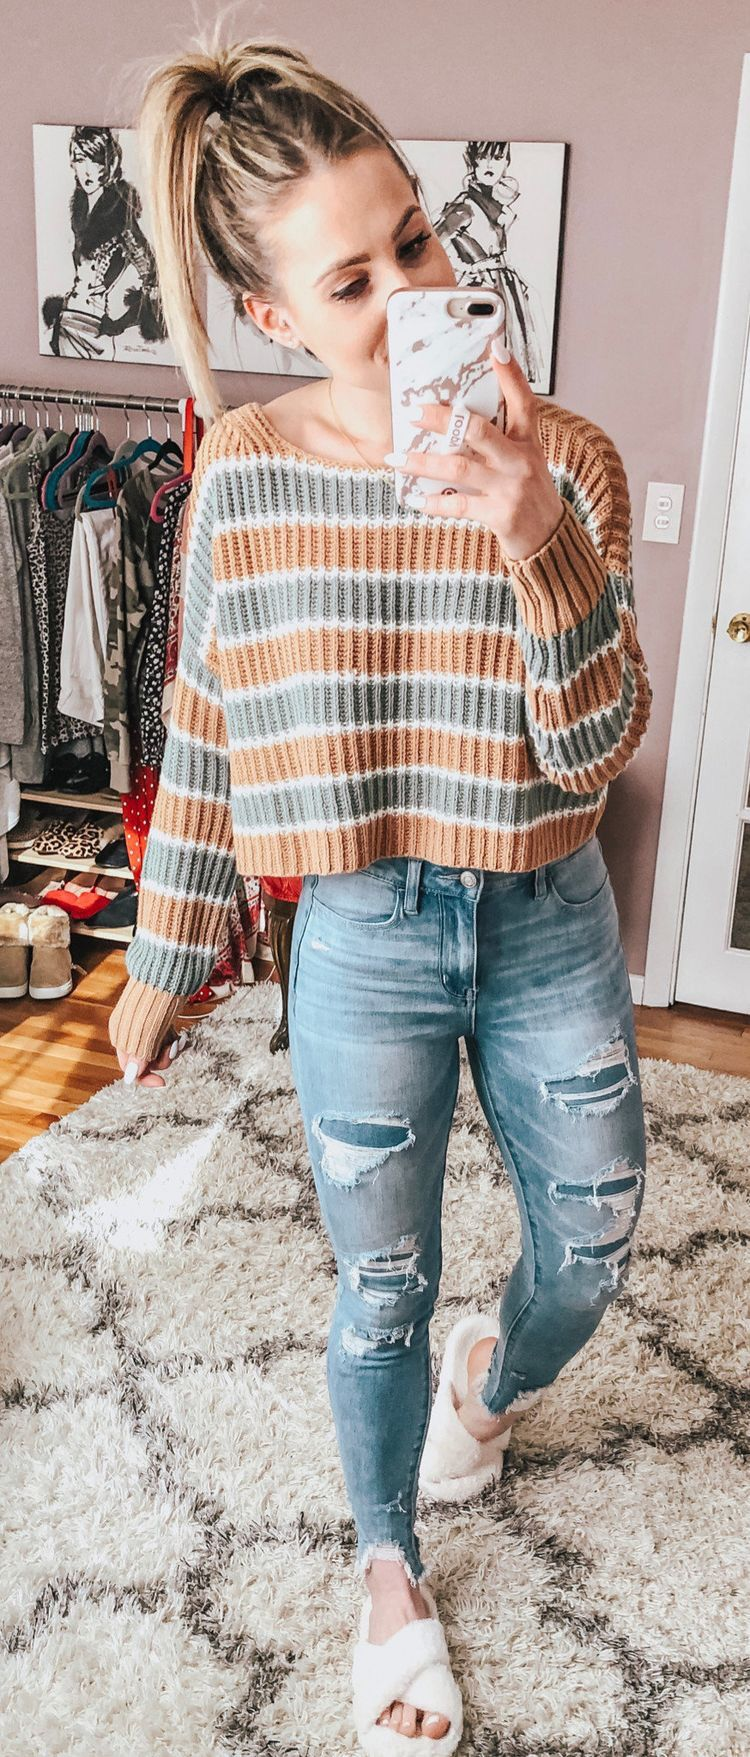 57c0cb4d5597 𝓟𝓲𝓷 : 𝕤𝕒𝕣𝕒𝕙𝕩𝕒𝕚𝕤𝕦𝕟 ✰⋆. Fall Winter Outfits, Cold Spring Outfit